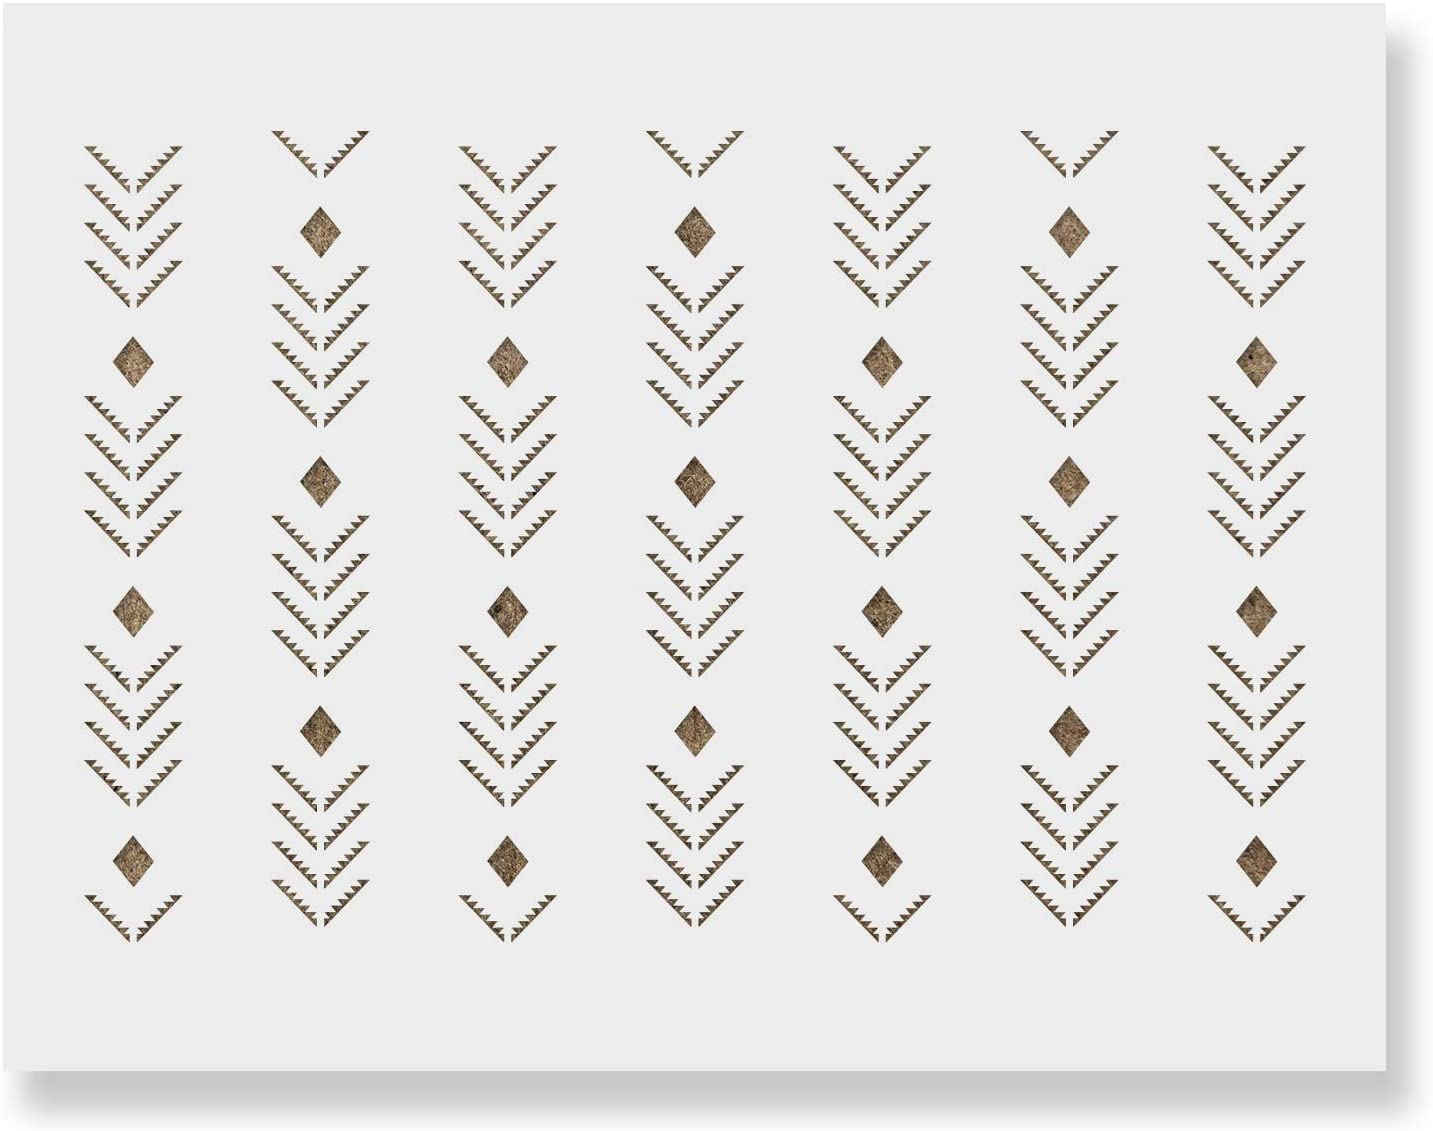 price Zoom Arrow Pattern Wall Stencil - Home Your Decorate for Less New Shipping Free Shipping